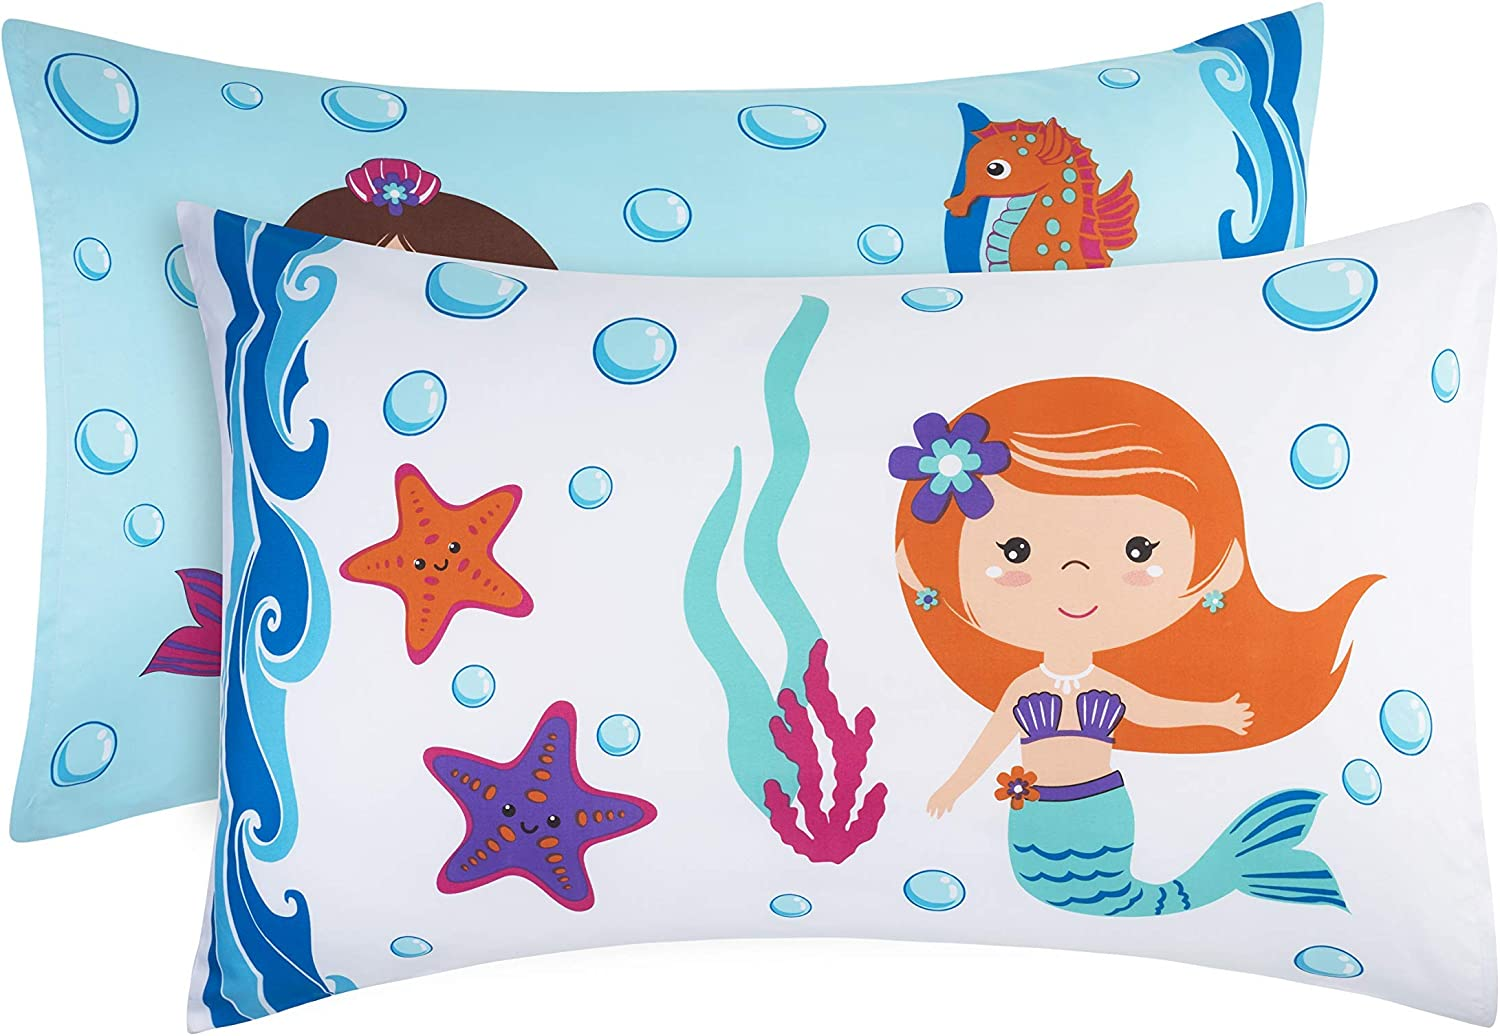 EVERYDAY KIDS Mermaid 2 Pack Lowest price challenge Pillowcase Breathable Mi Max 42% OFF Soft - Set